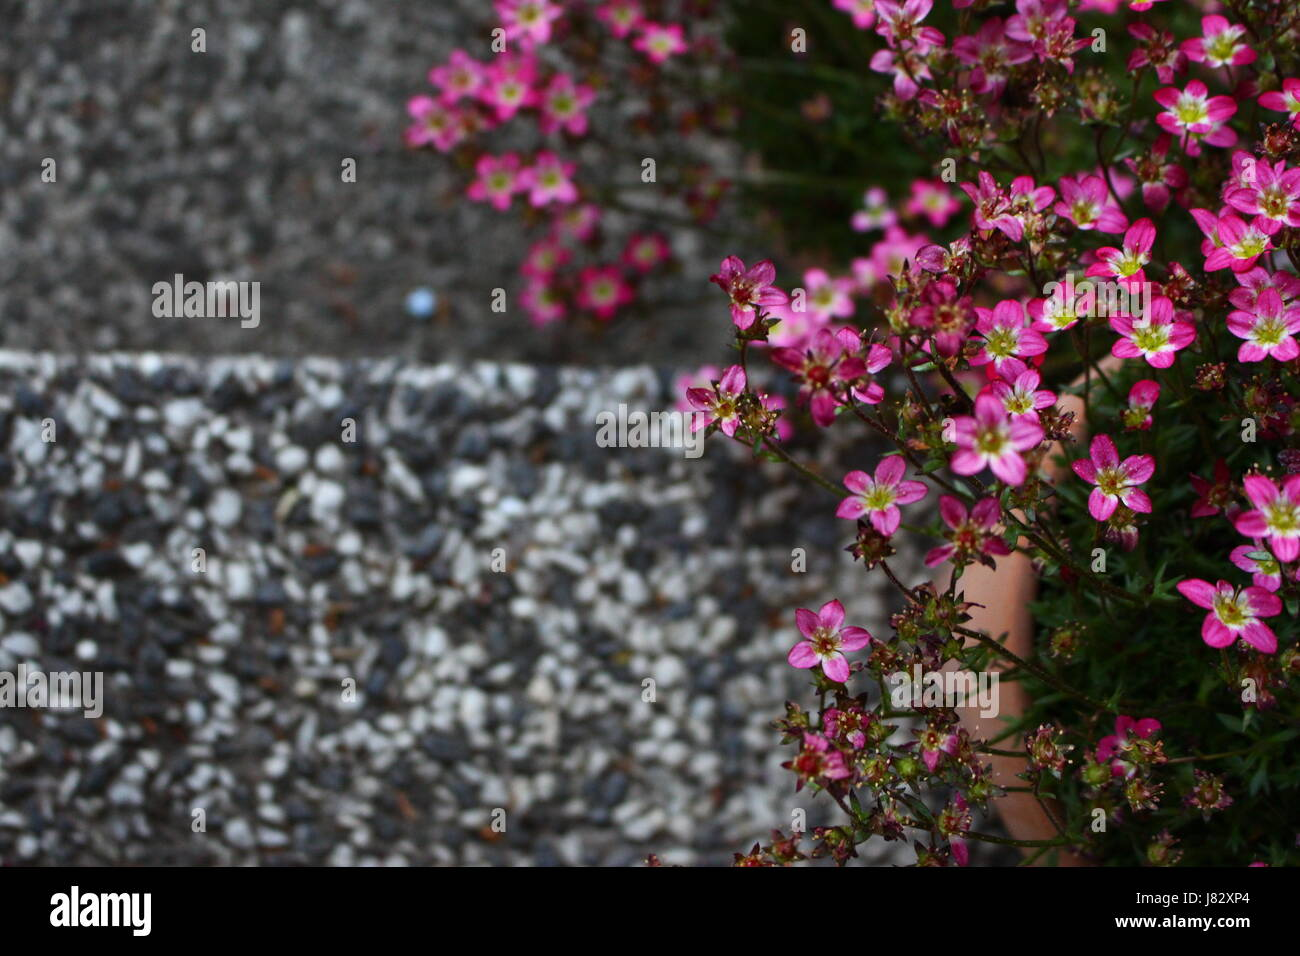 pink flowers contrast again black and white stone stairs - Stock Image